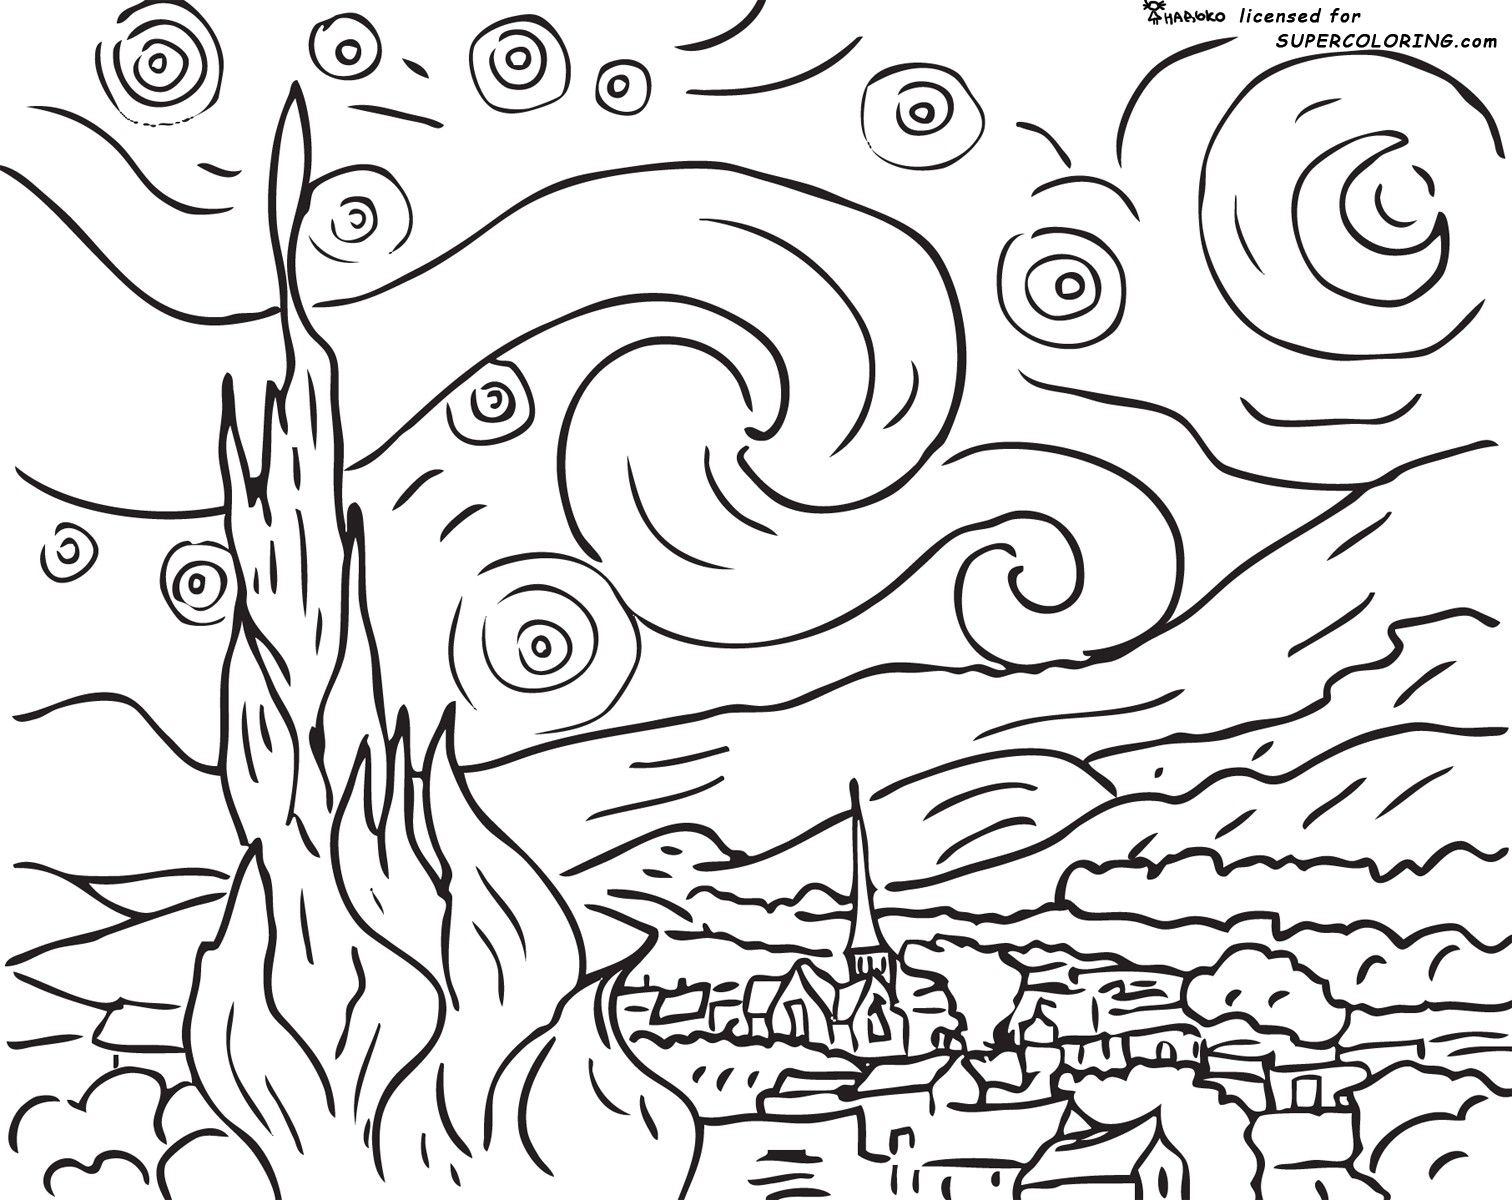 awesome coloring pages for teenagers - photo#29